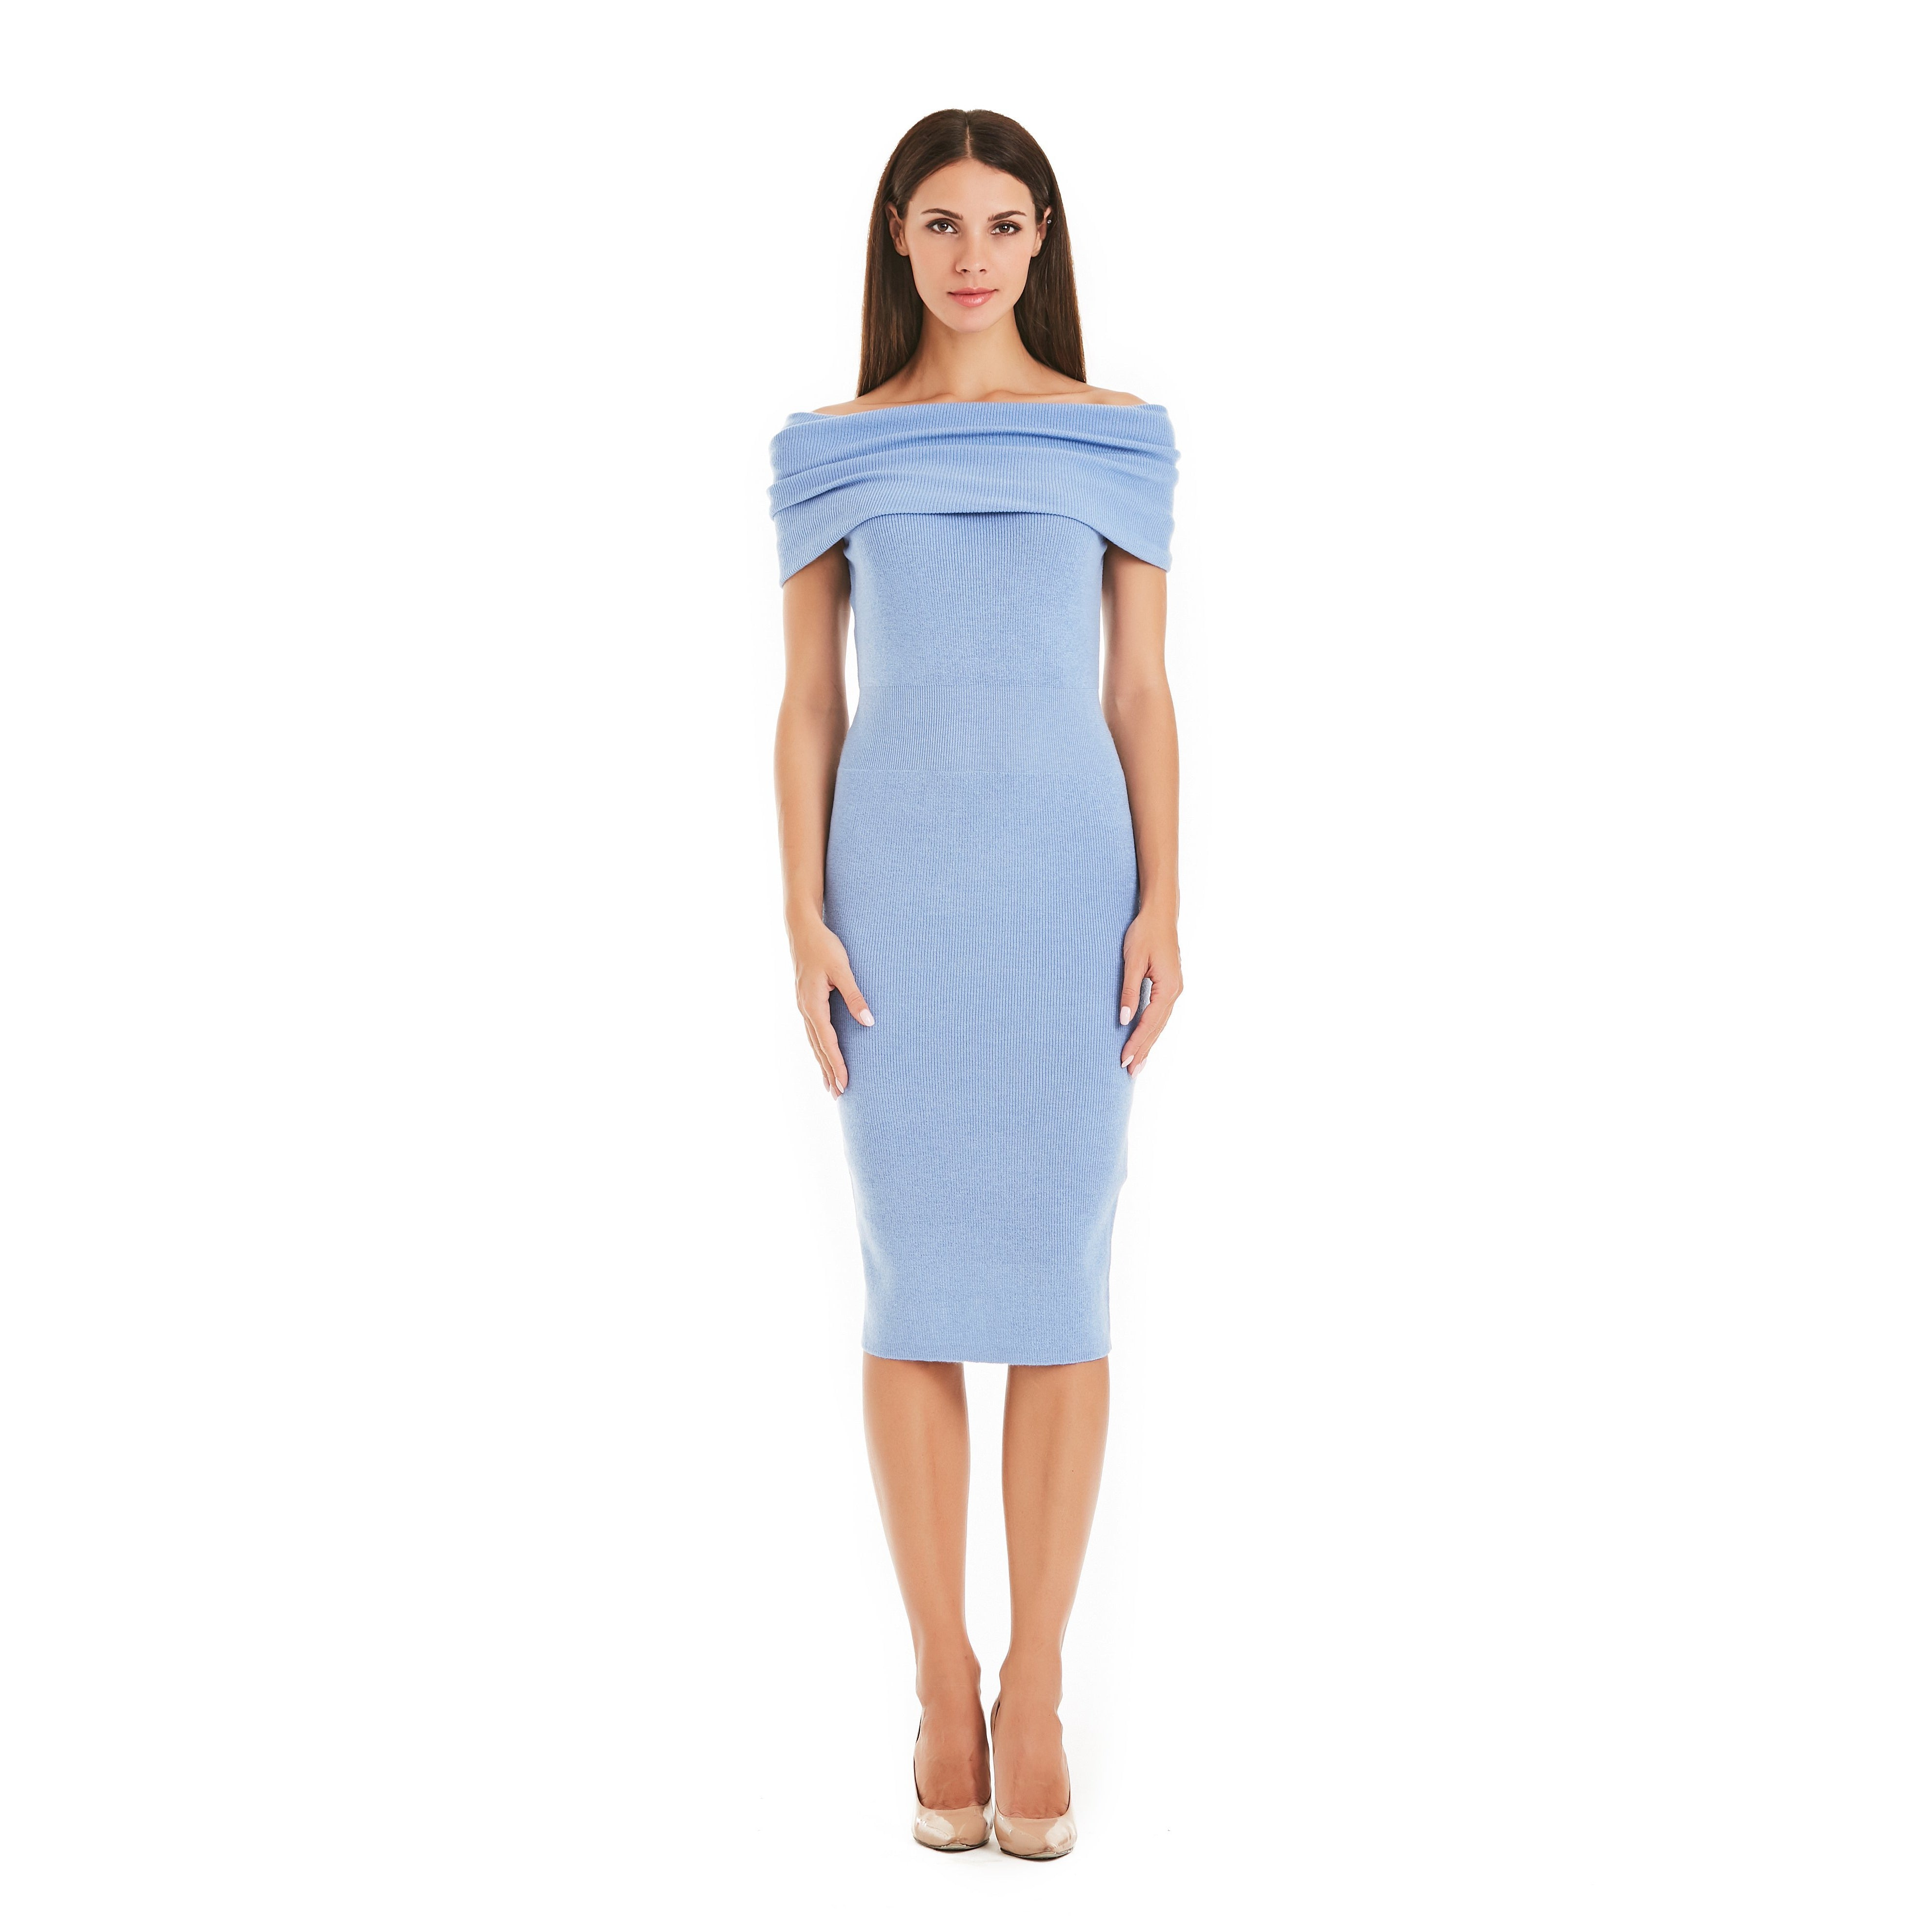 Blue Frill Dress With Bardot Neck-INA VOKICH-HOUSE of BOTTA